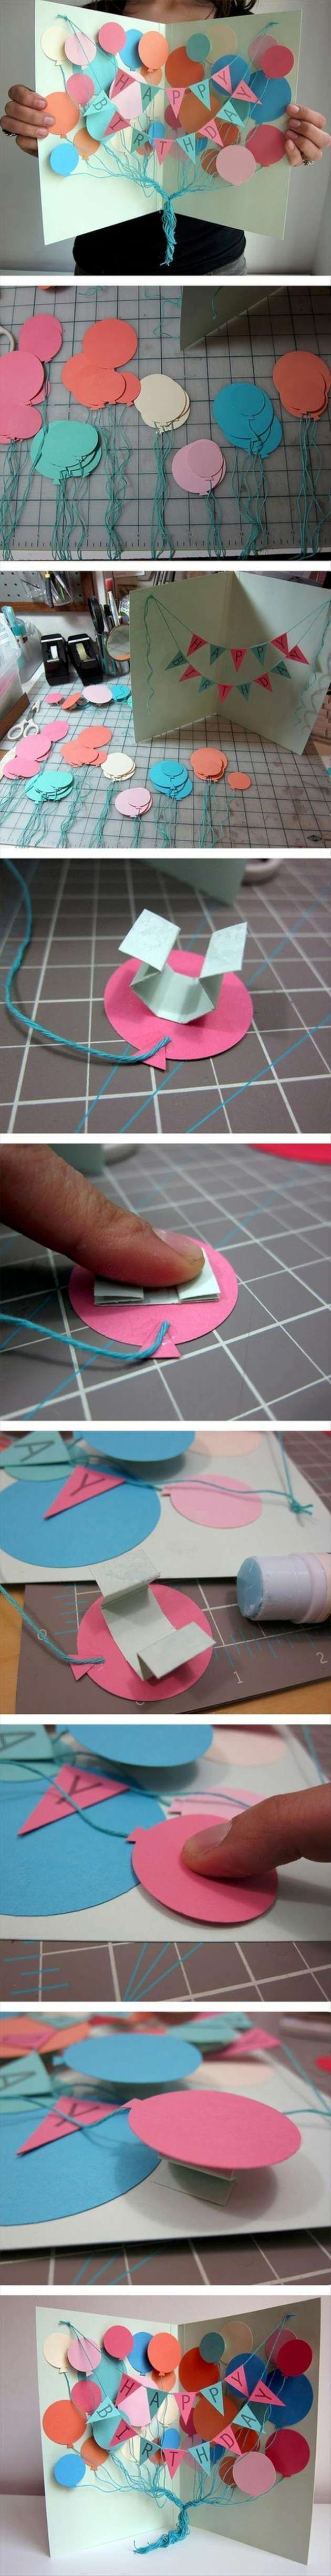 Simple but Genius Crafty Ideas (18 Pics)